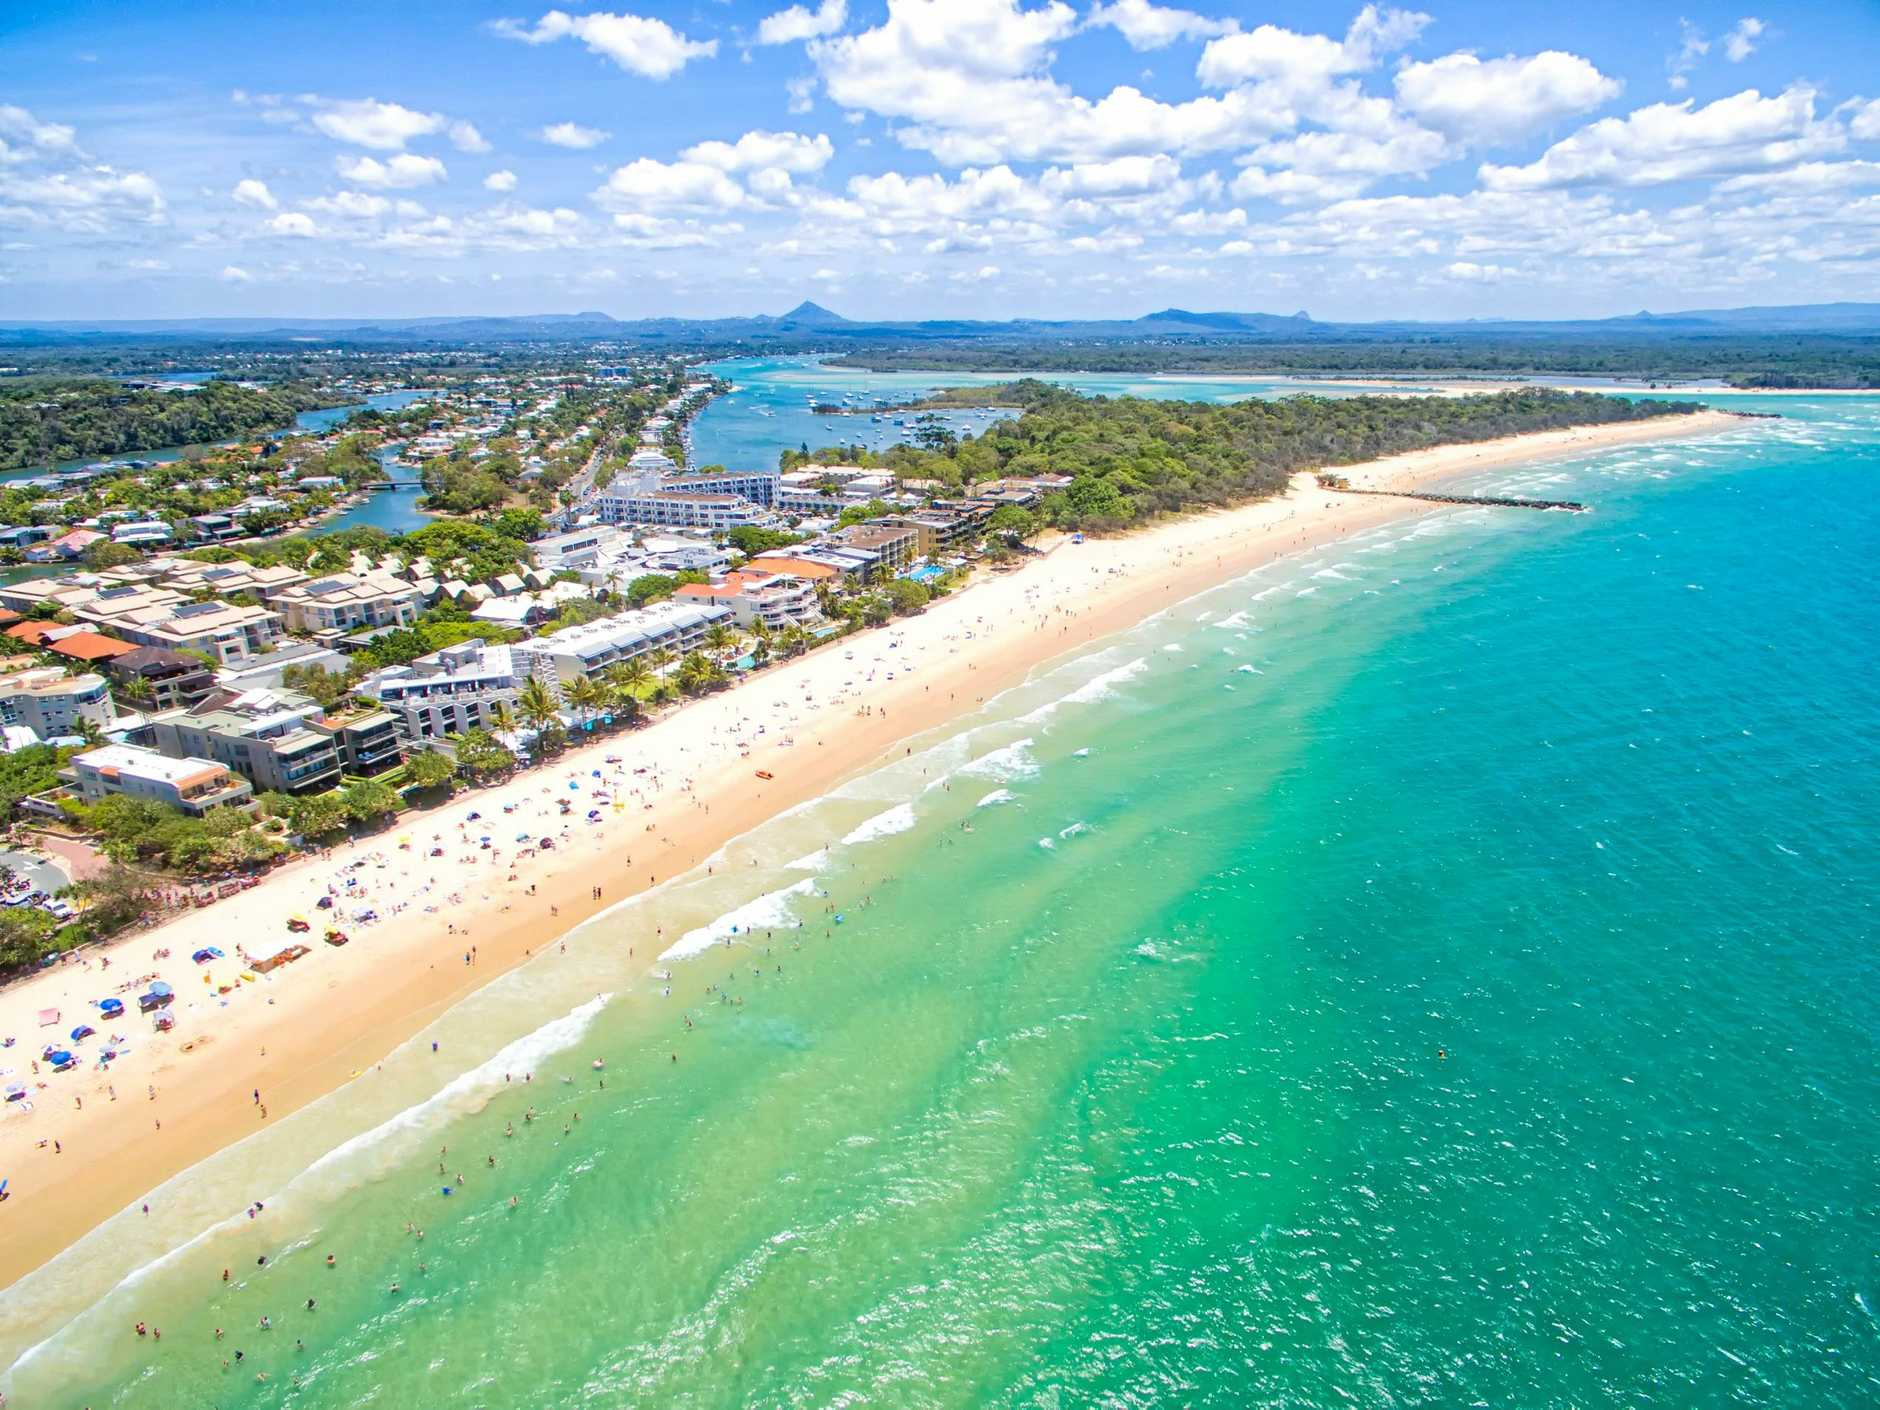 Noosa on the Sunshine Coast in Queensland from an aerial perspective.